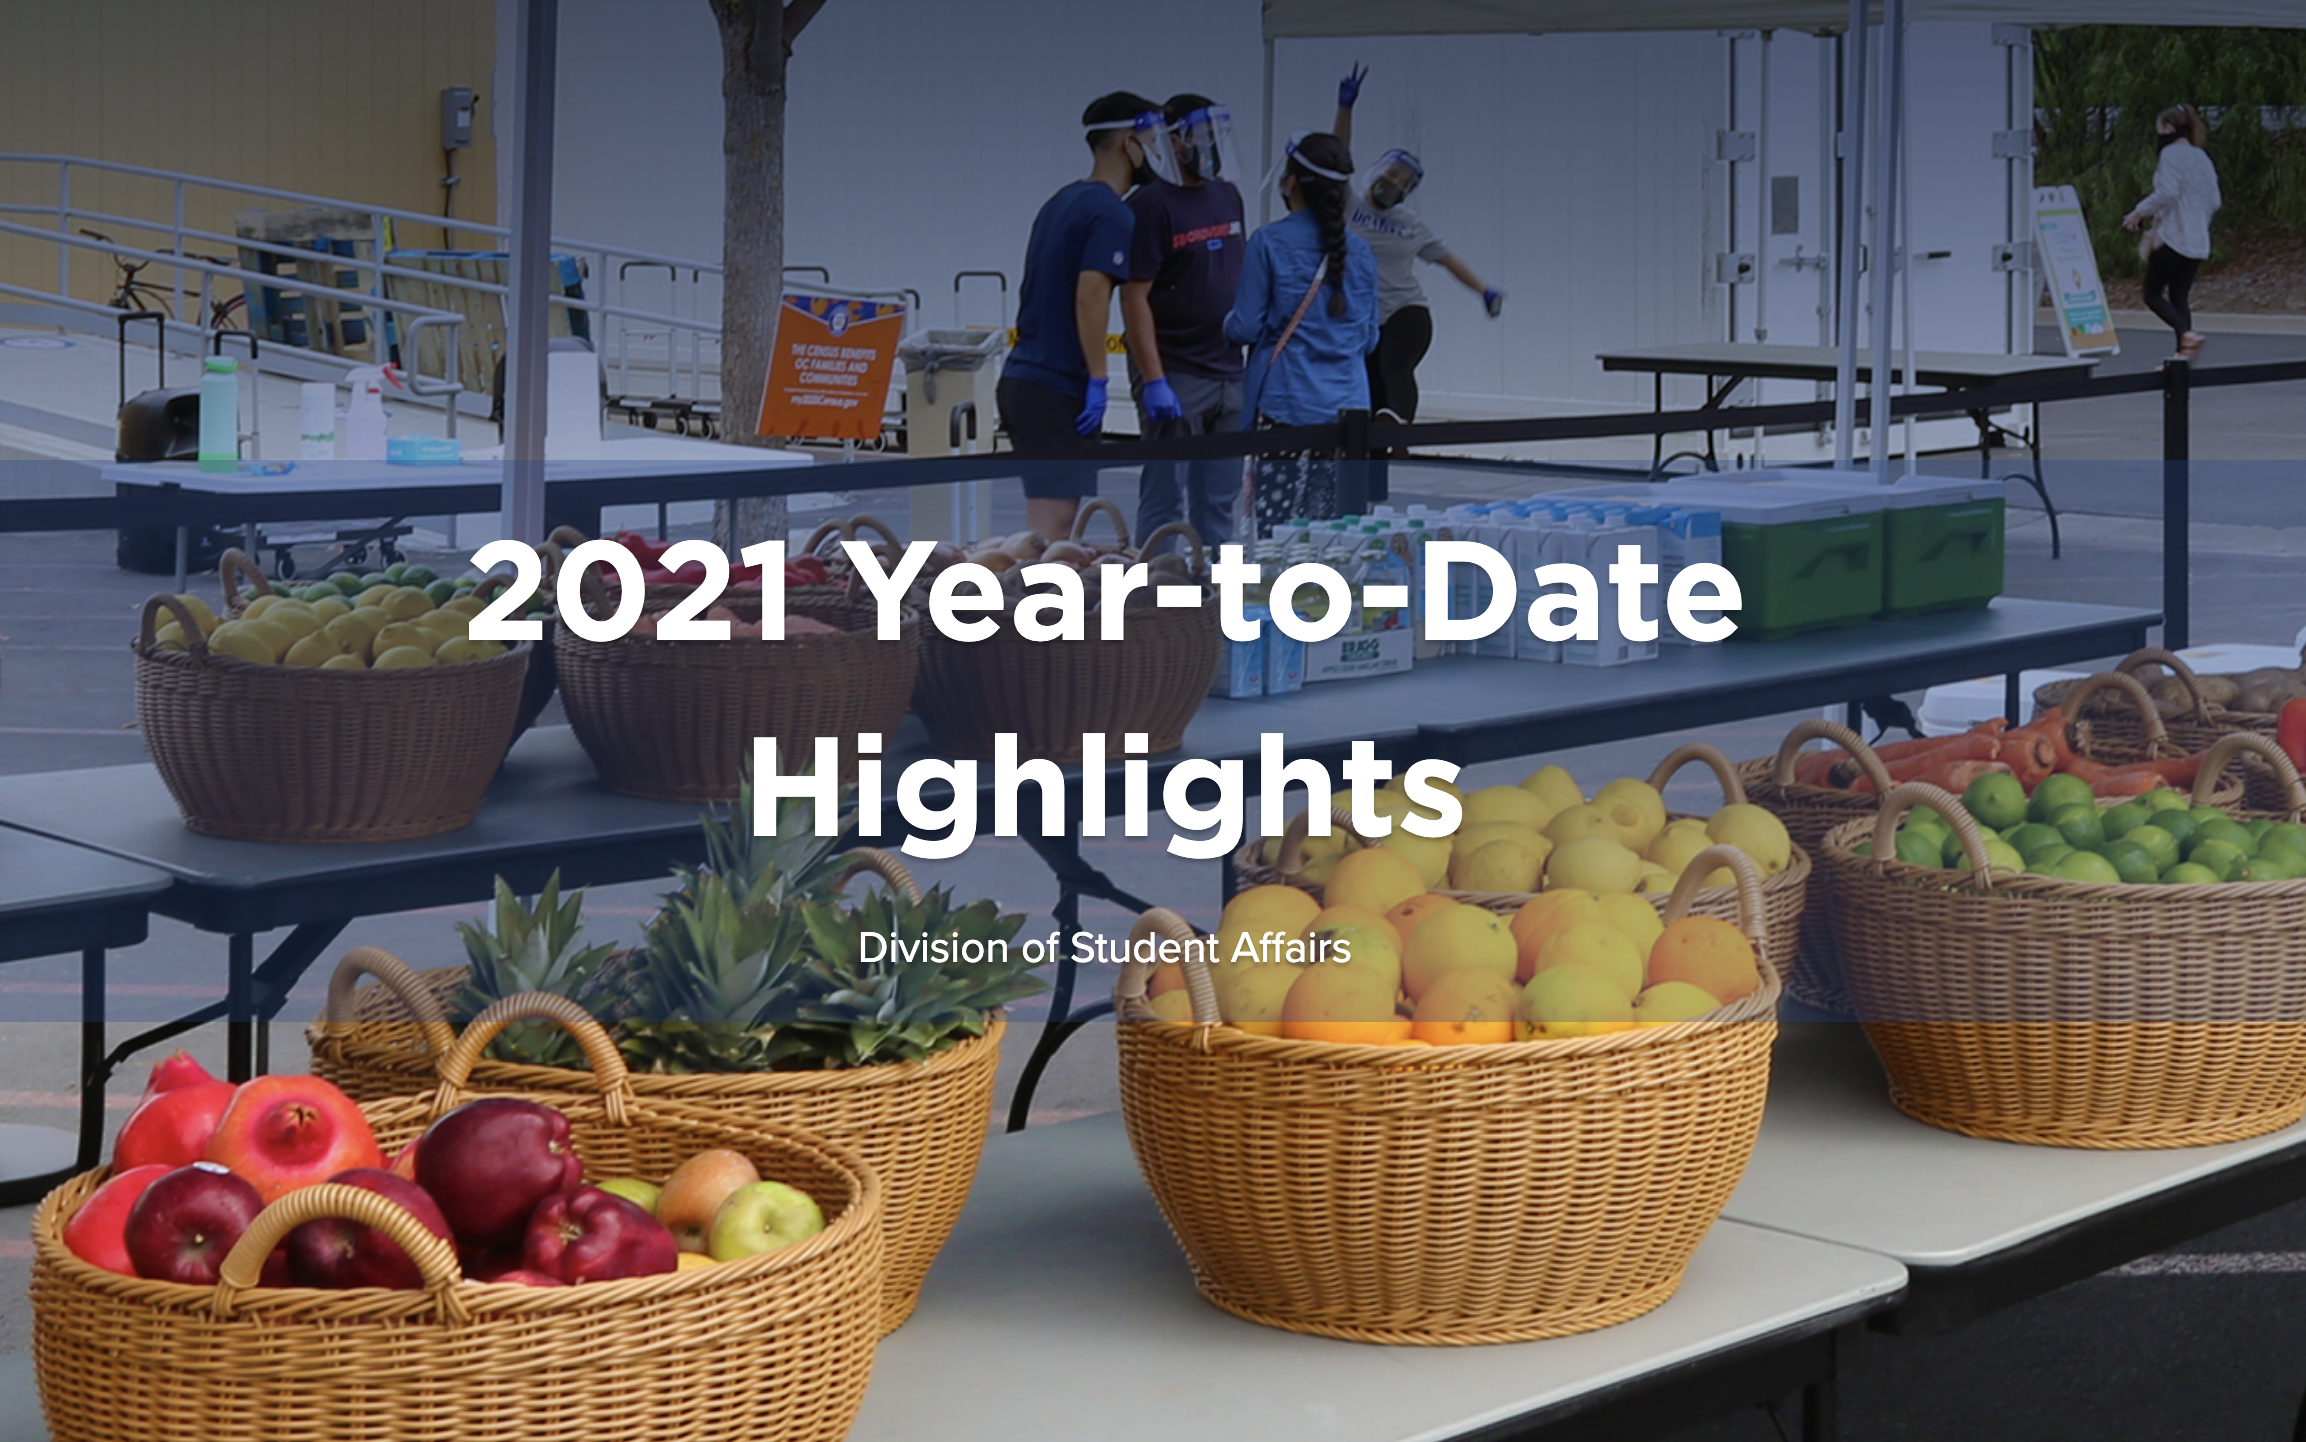 2021 Year-to-Date Highlights